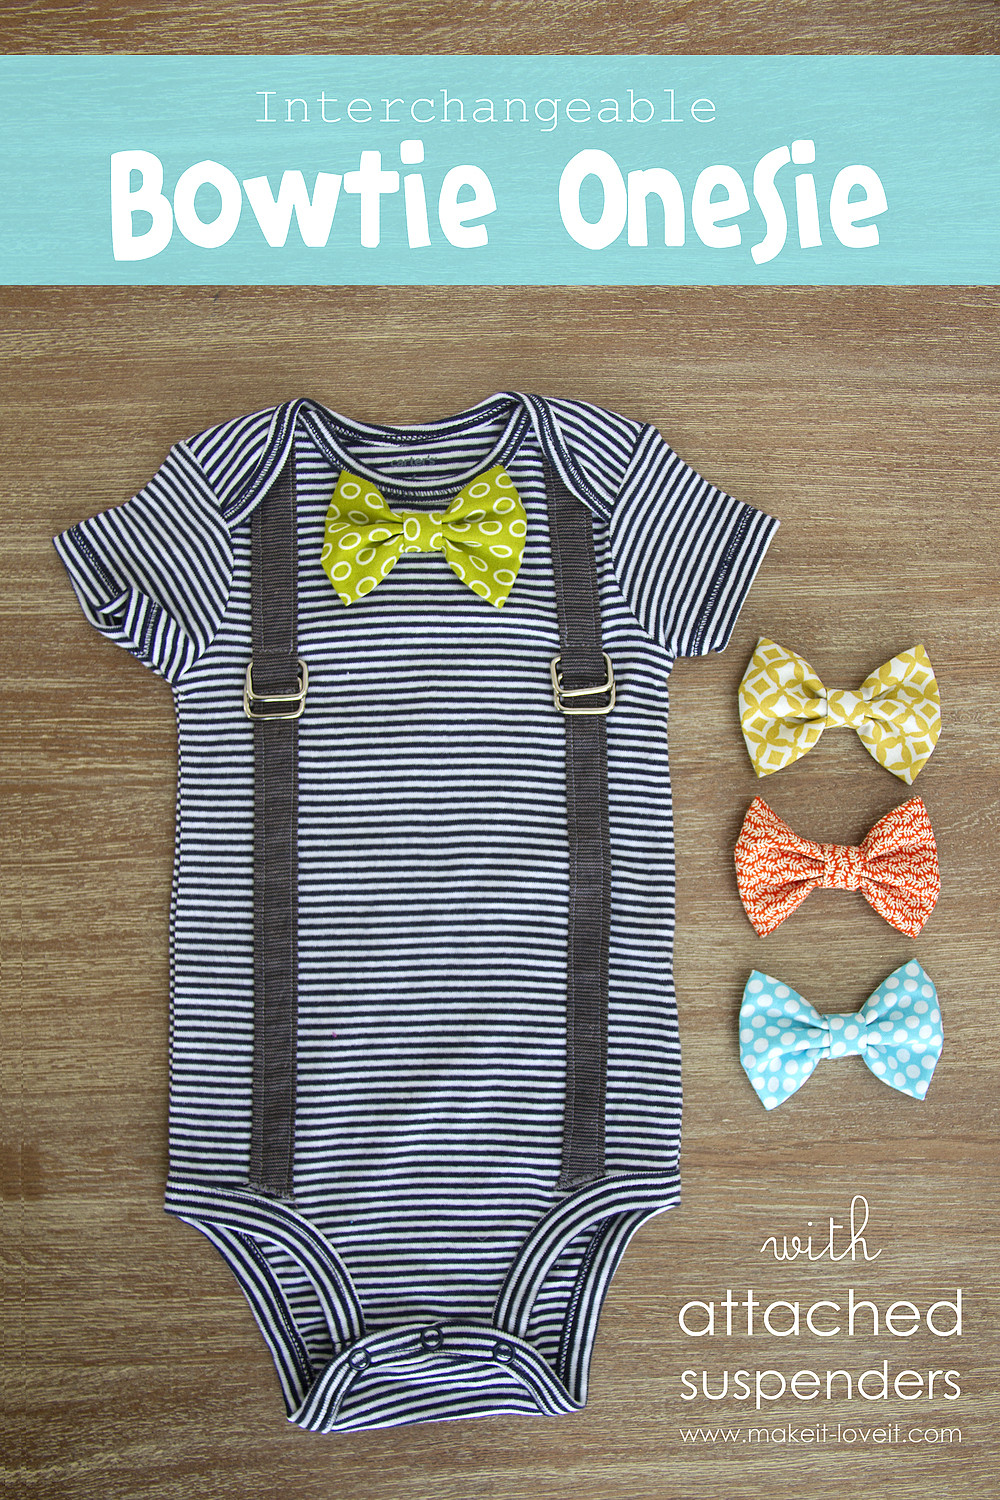 Best ideas about DIY Baby Bow Tie . Save or Pin Interchangeable Bowtie esie with Attached Suspenders Now.